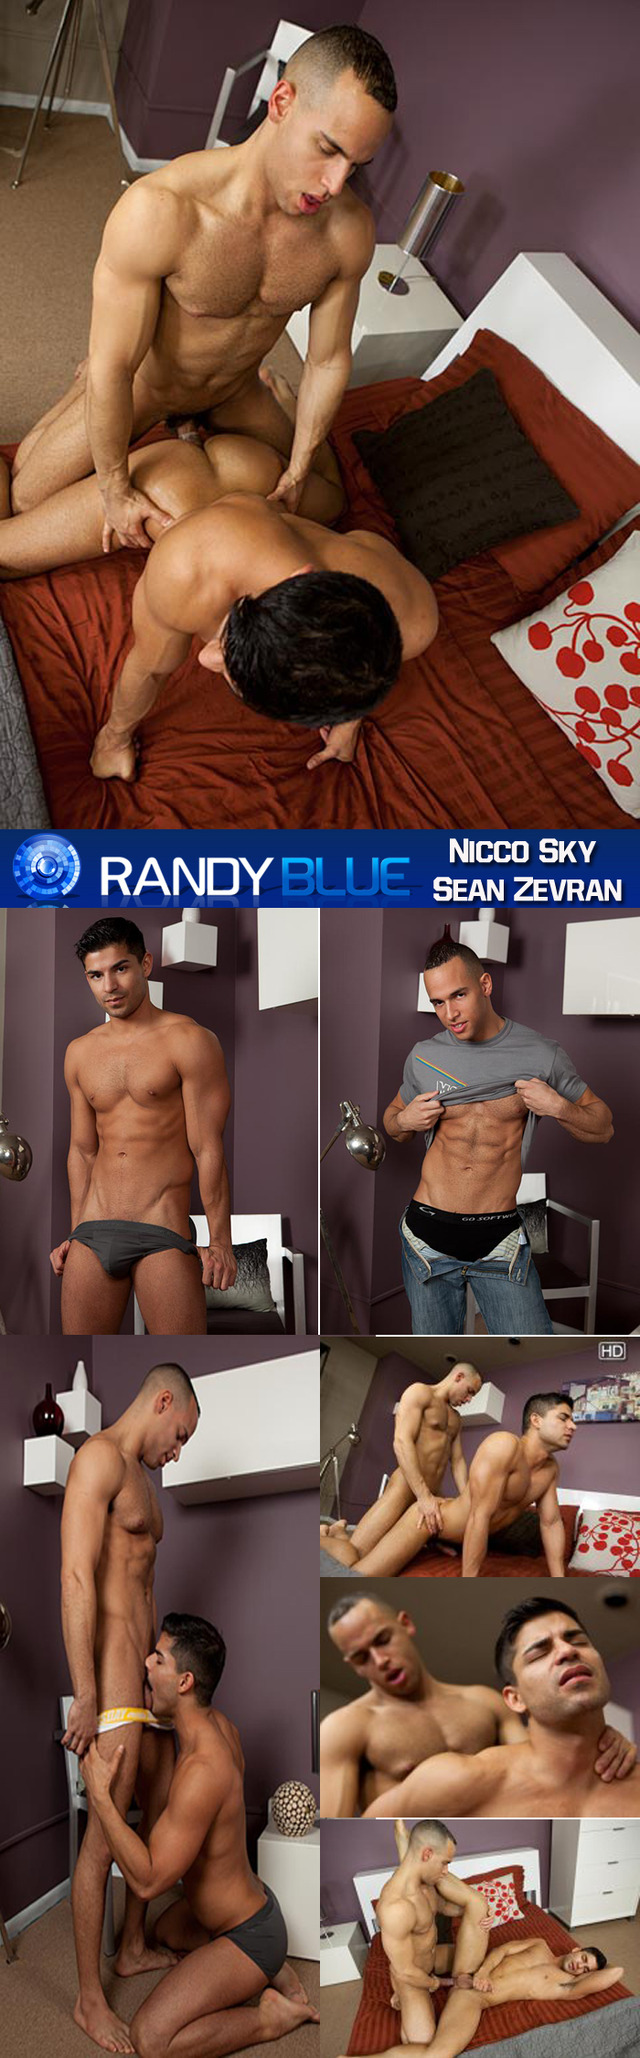 Nicco Sky Porn fuck out bang sean zevran fantasy nicco sky amateurs secret skyx fulfills